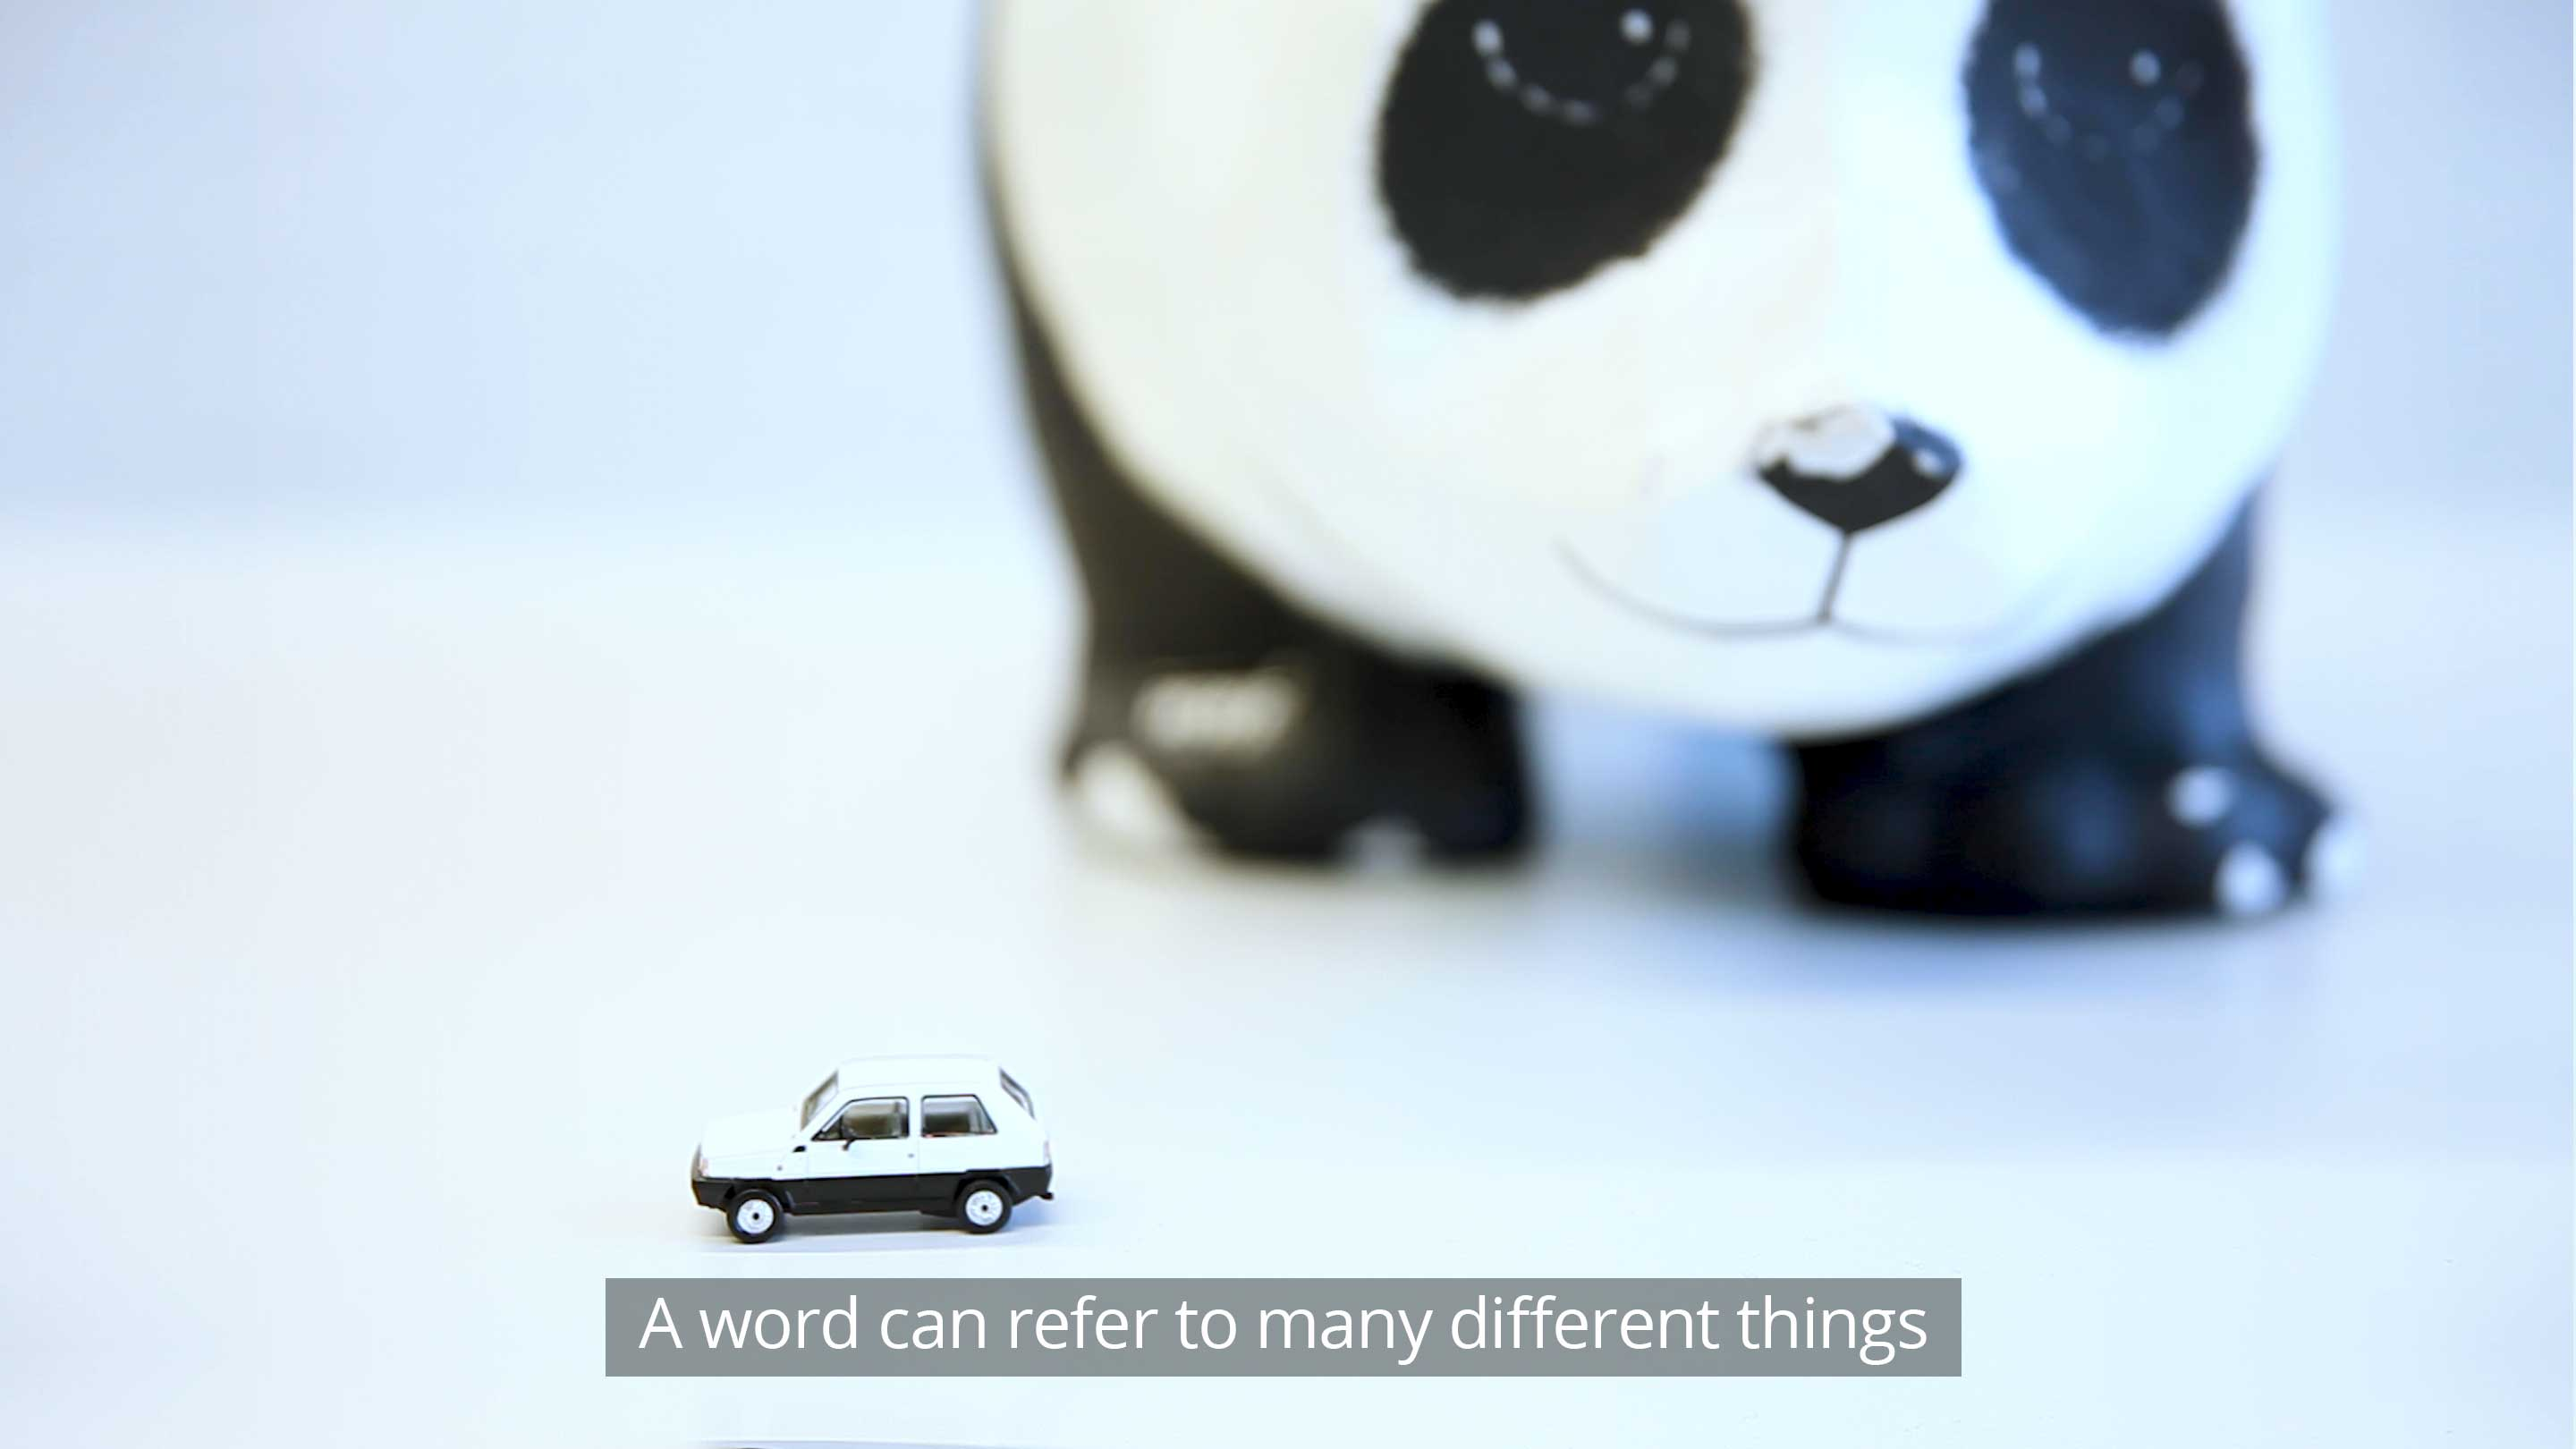 A word can refer to many different things